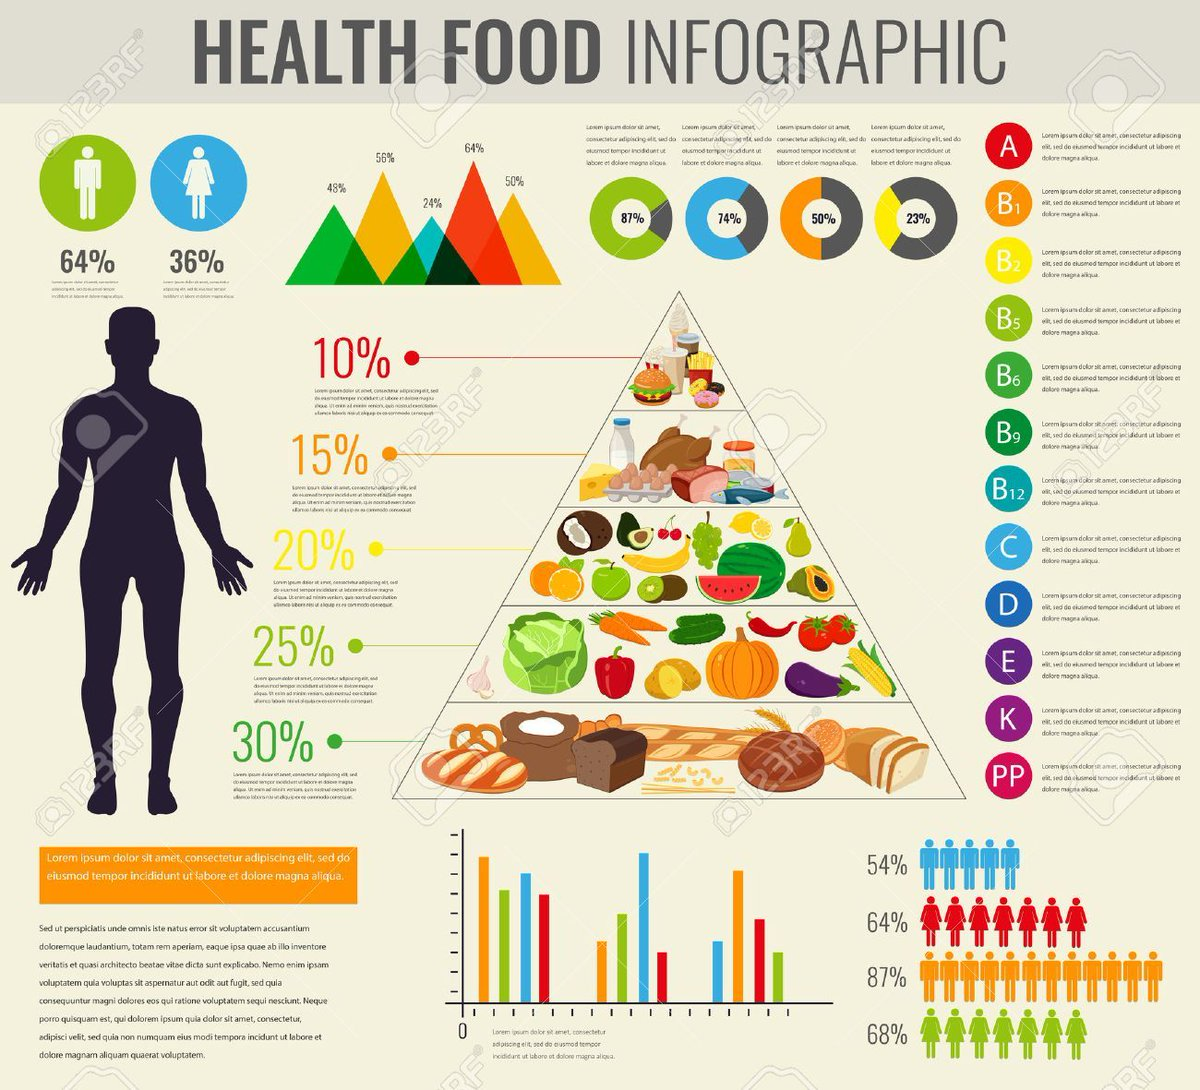 My Vital C On Twitter Health Food Infographic Food Pyramid Healthy Eating Concept Healthylife Healthyfood Healthylifestyle Healthyeating Healthyrecipes Nutrition Https T Co Wdjnnj1boo